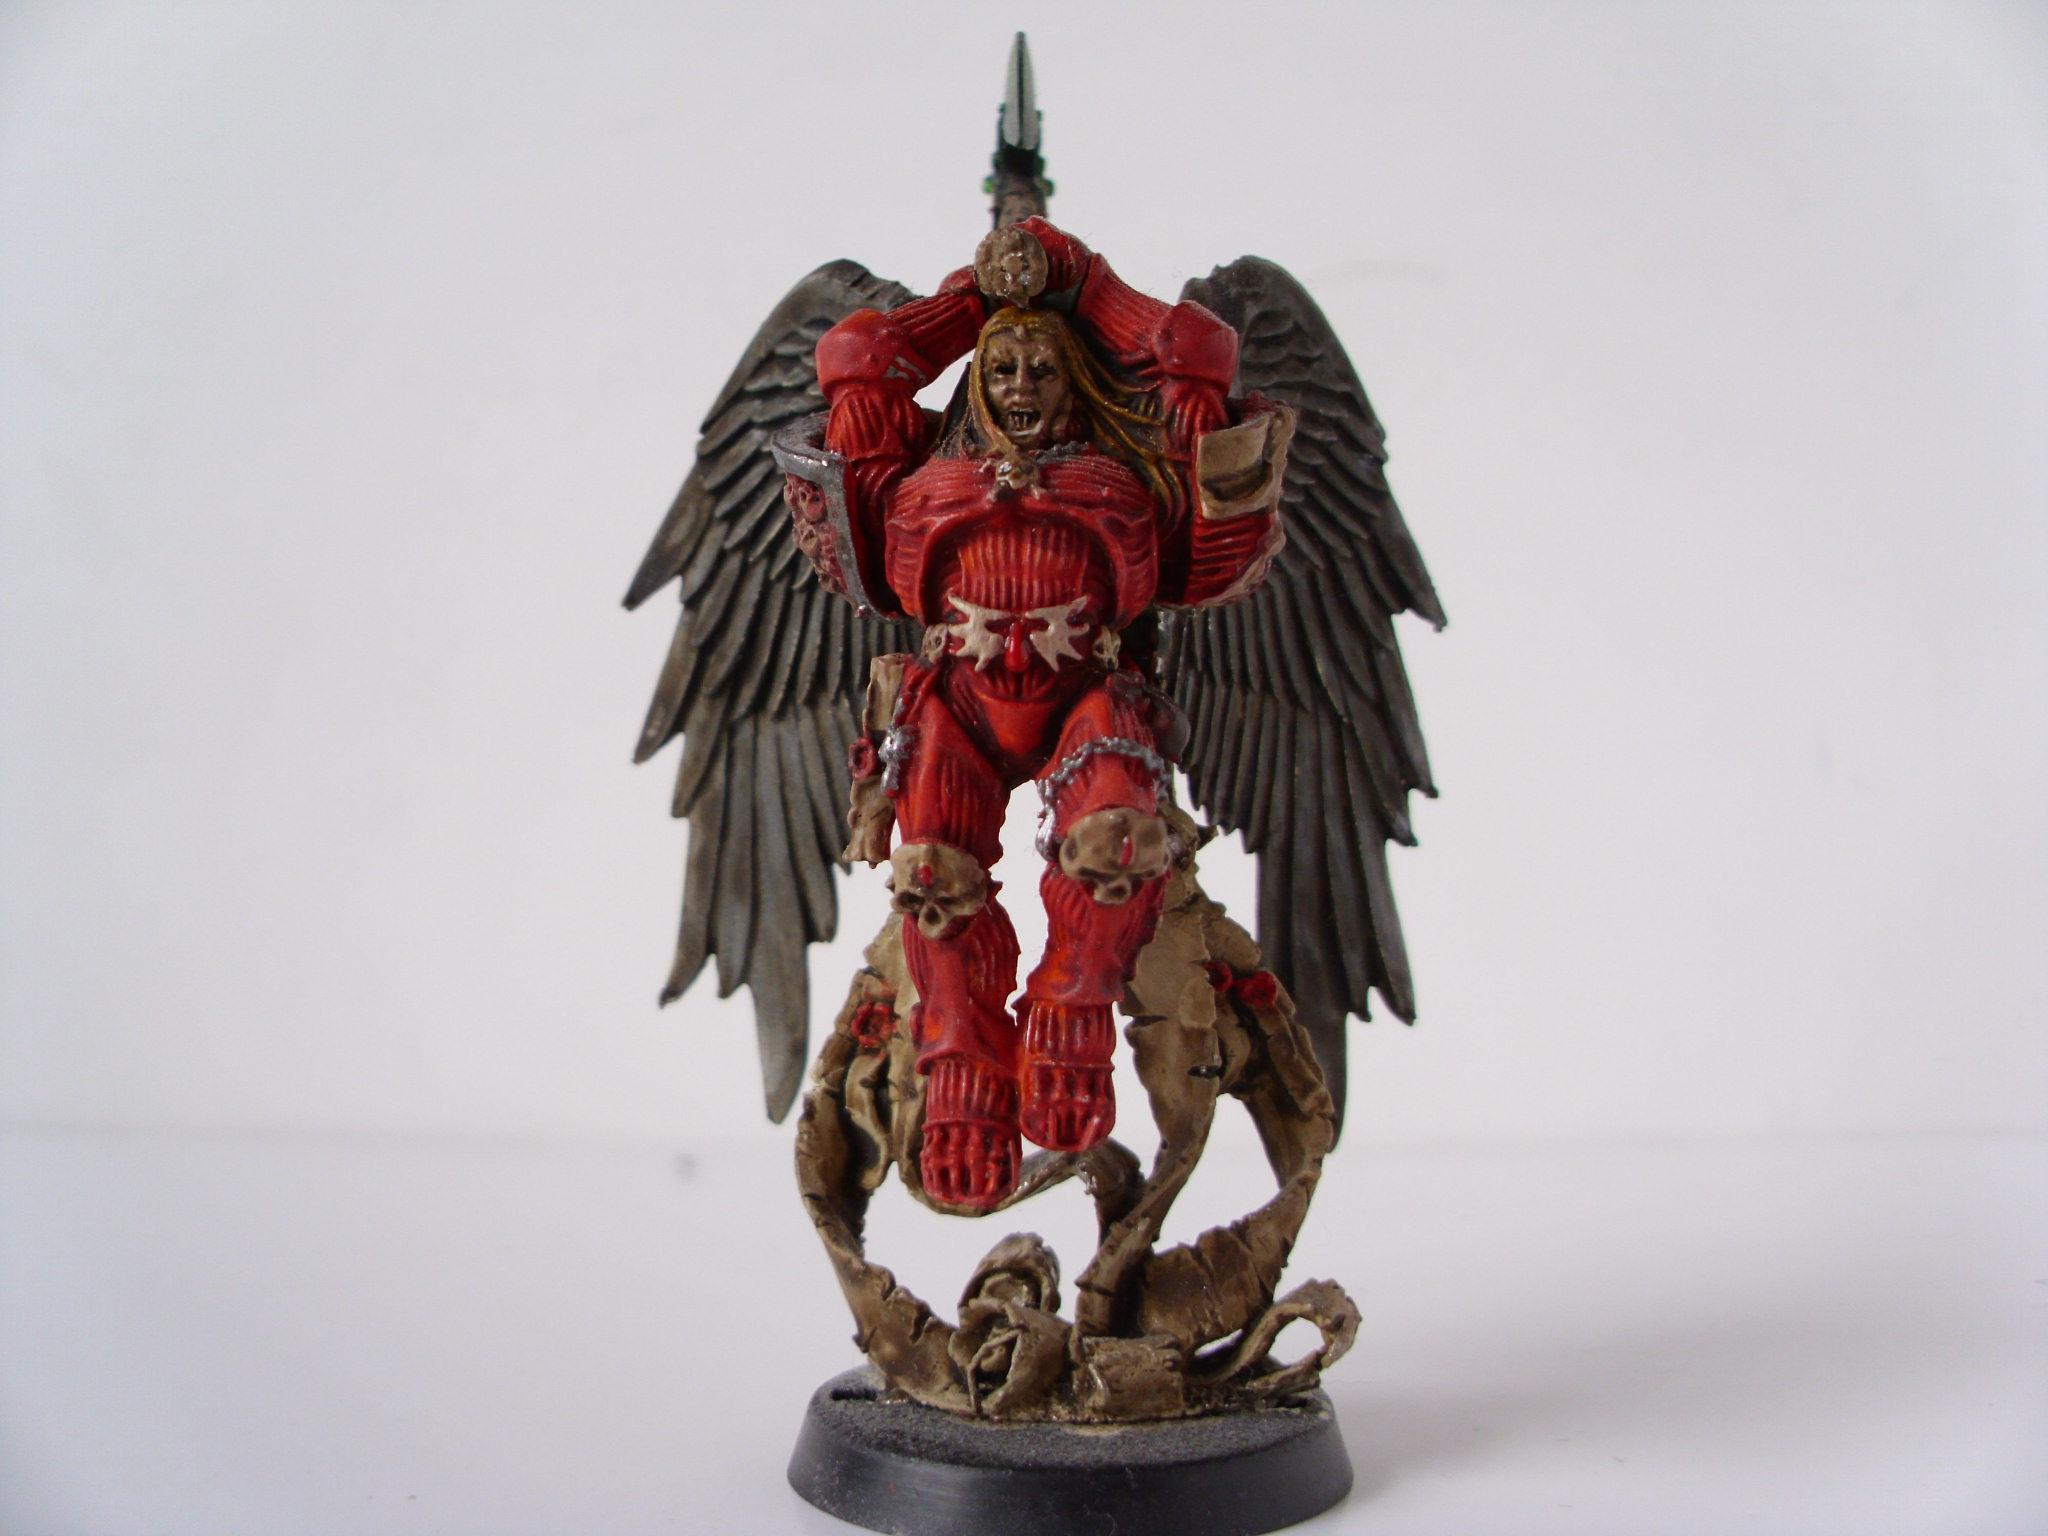 Blood Angels, Astorath the Grim